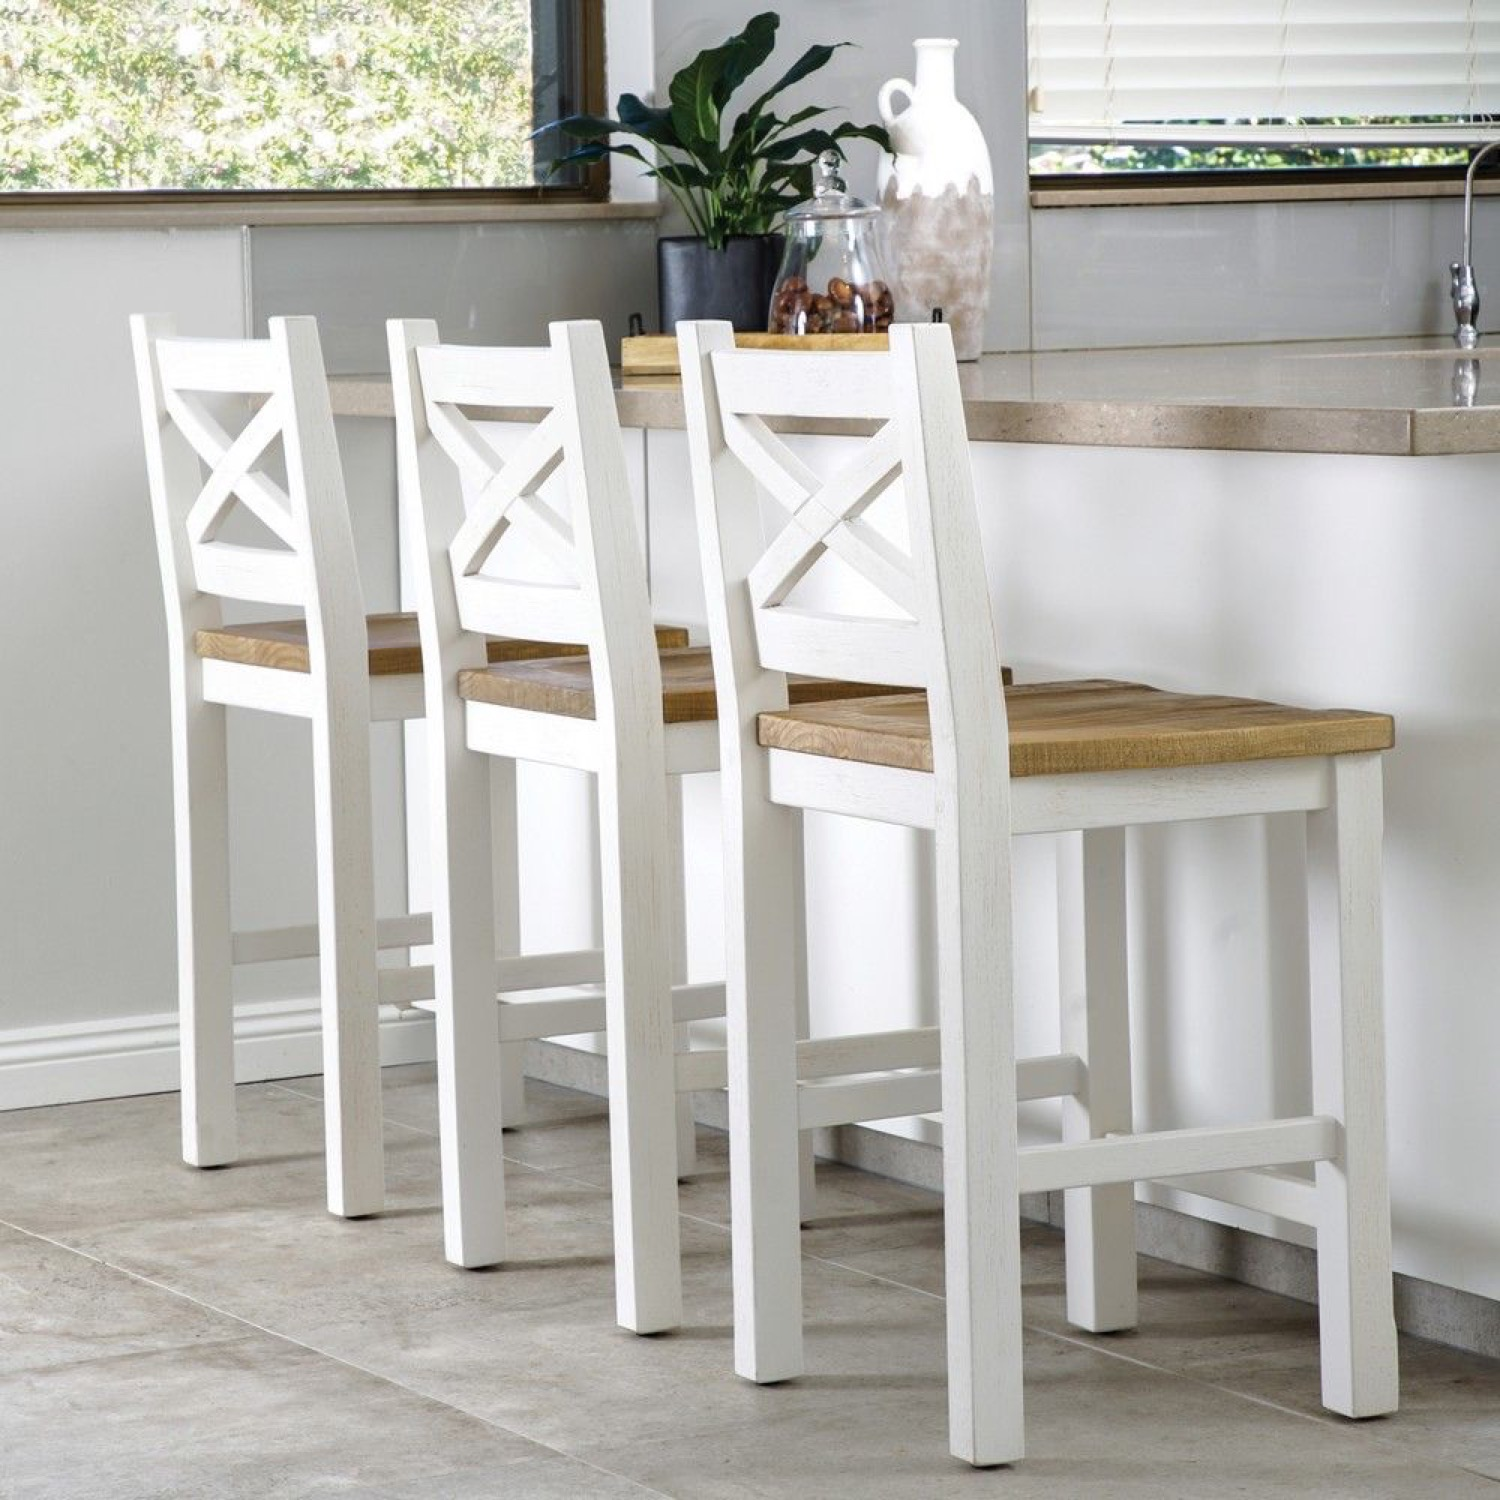 Bar Stool Styling: Decor and Buying Guide